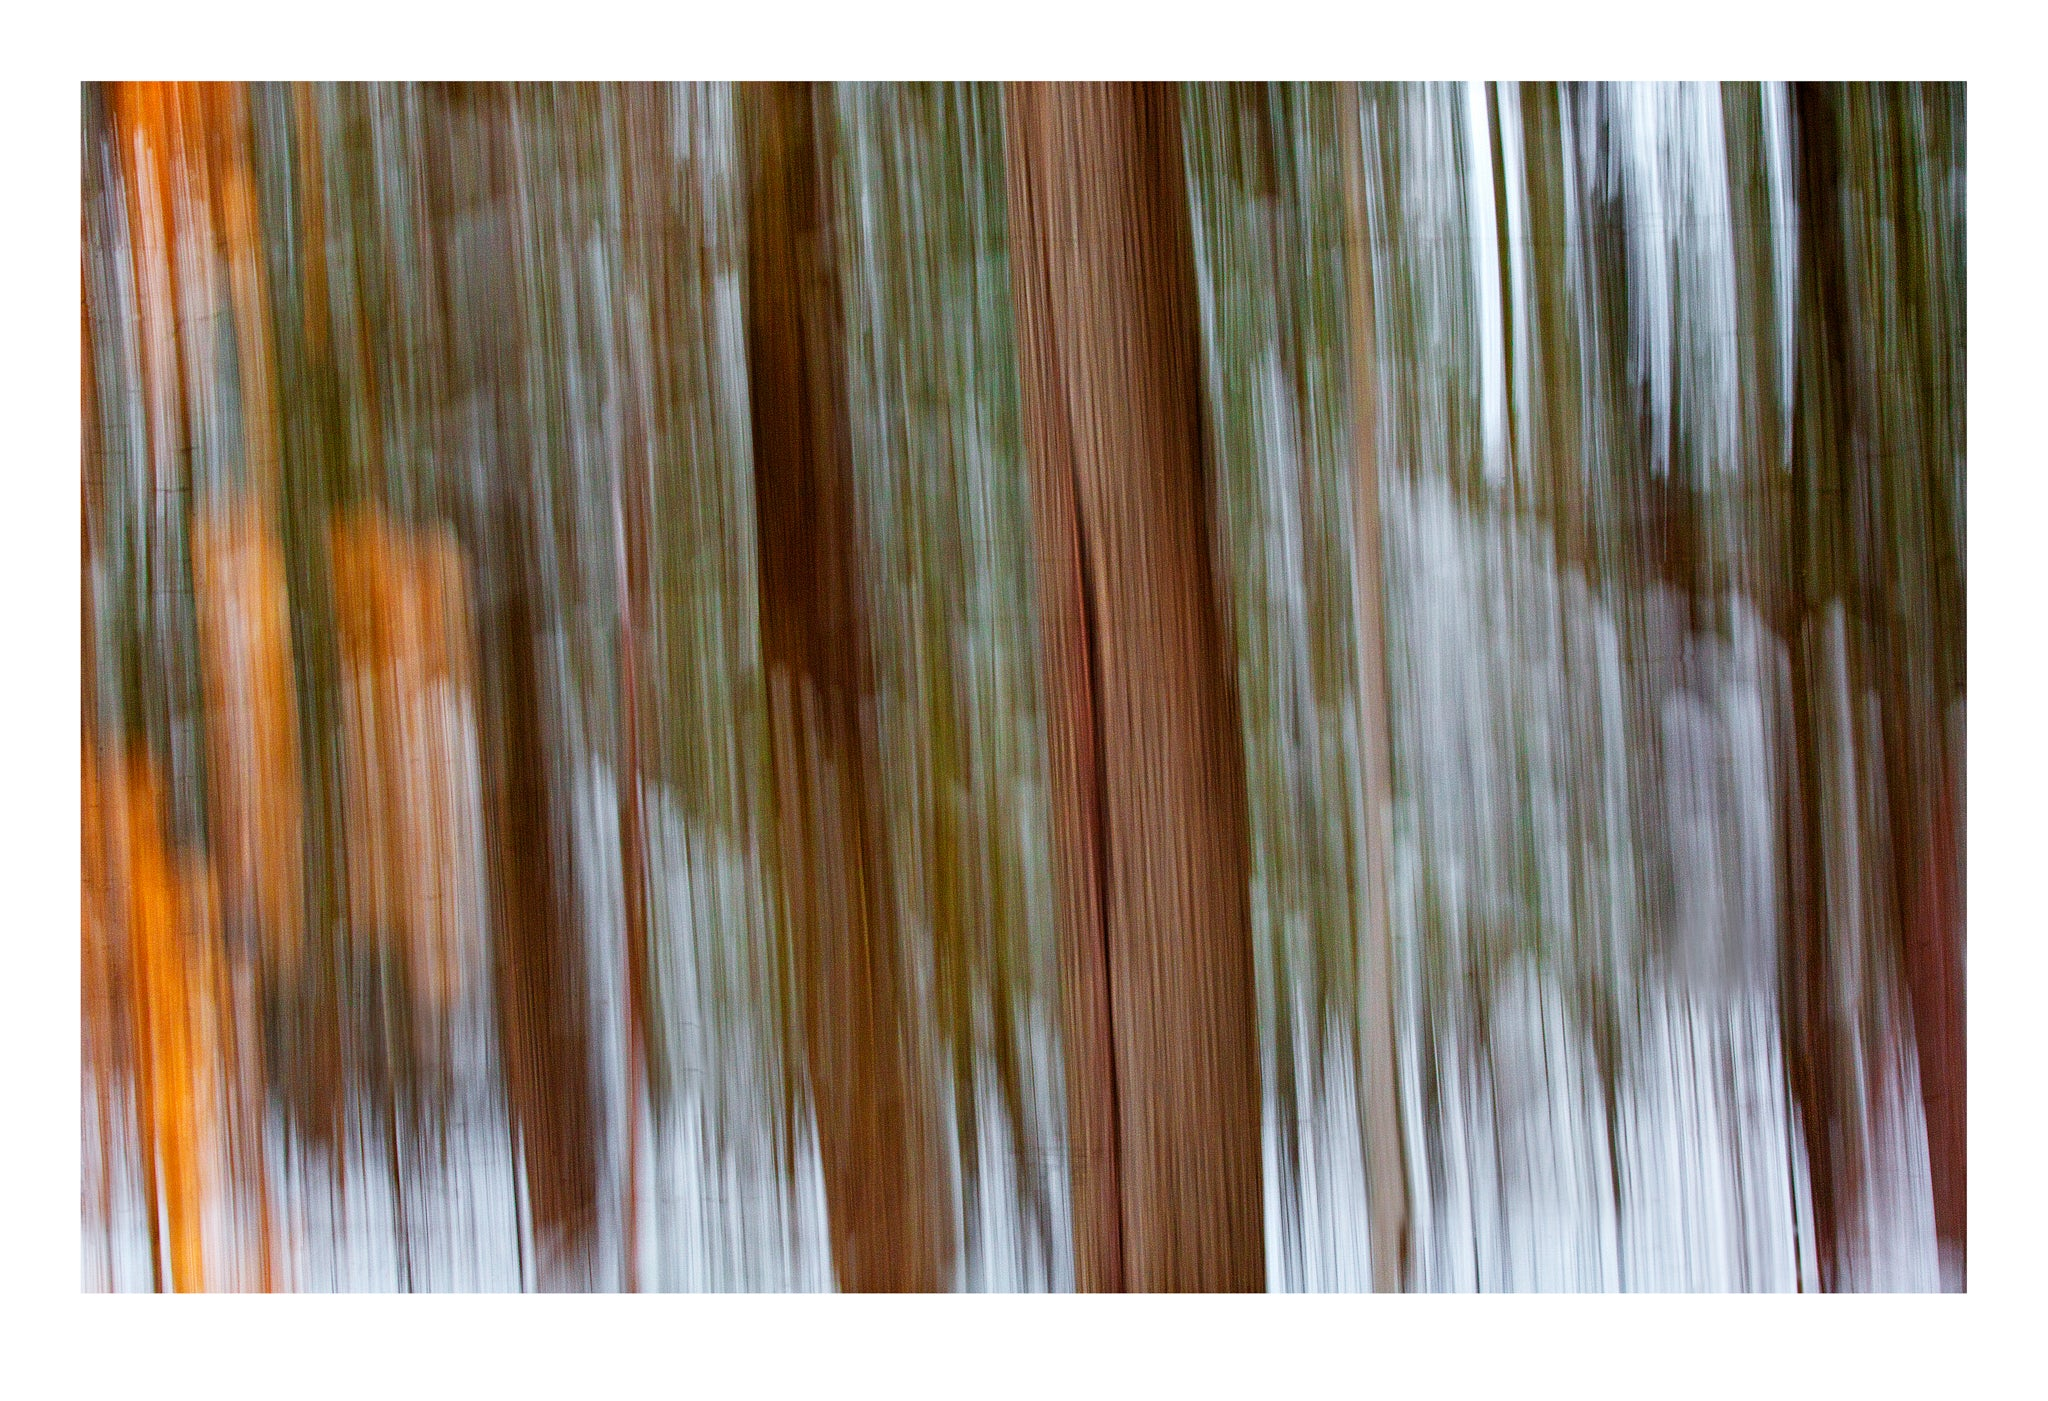 'Into the Woods' - Intentional Camera Movement